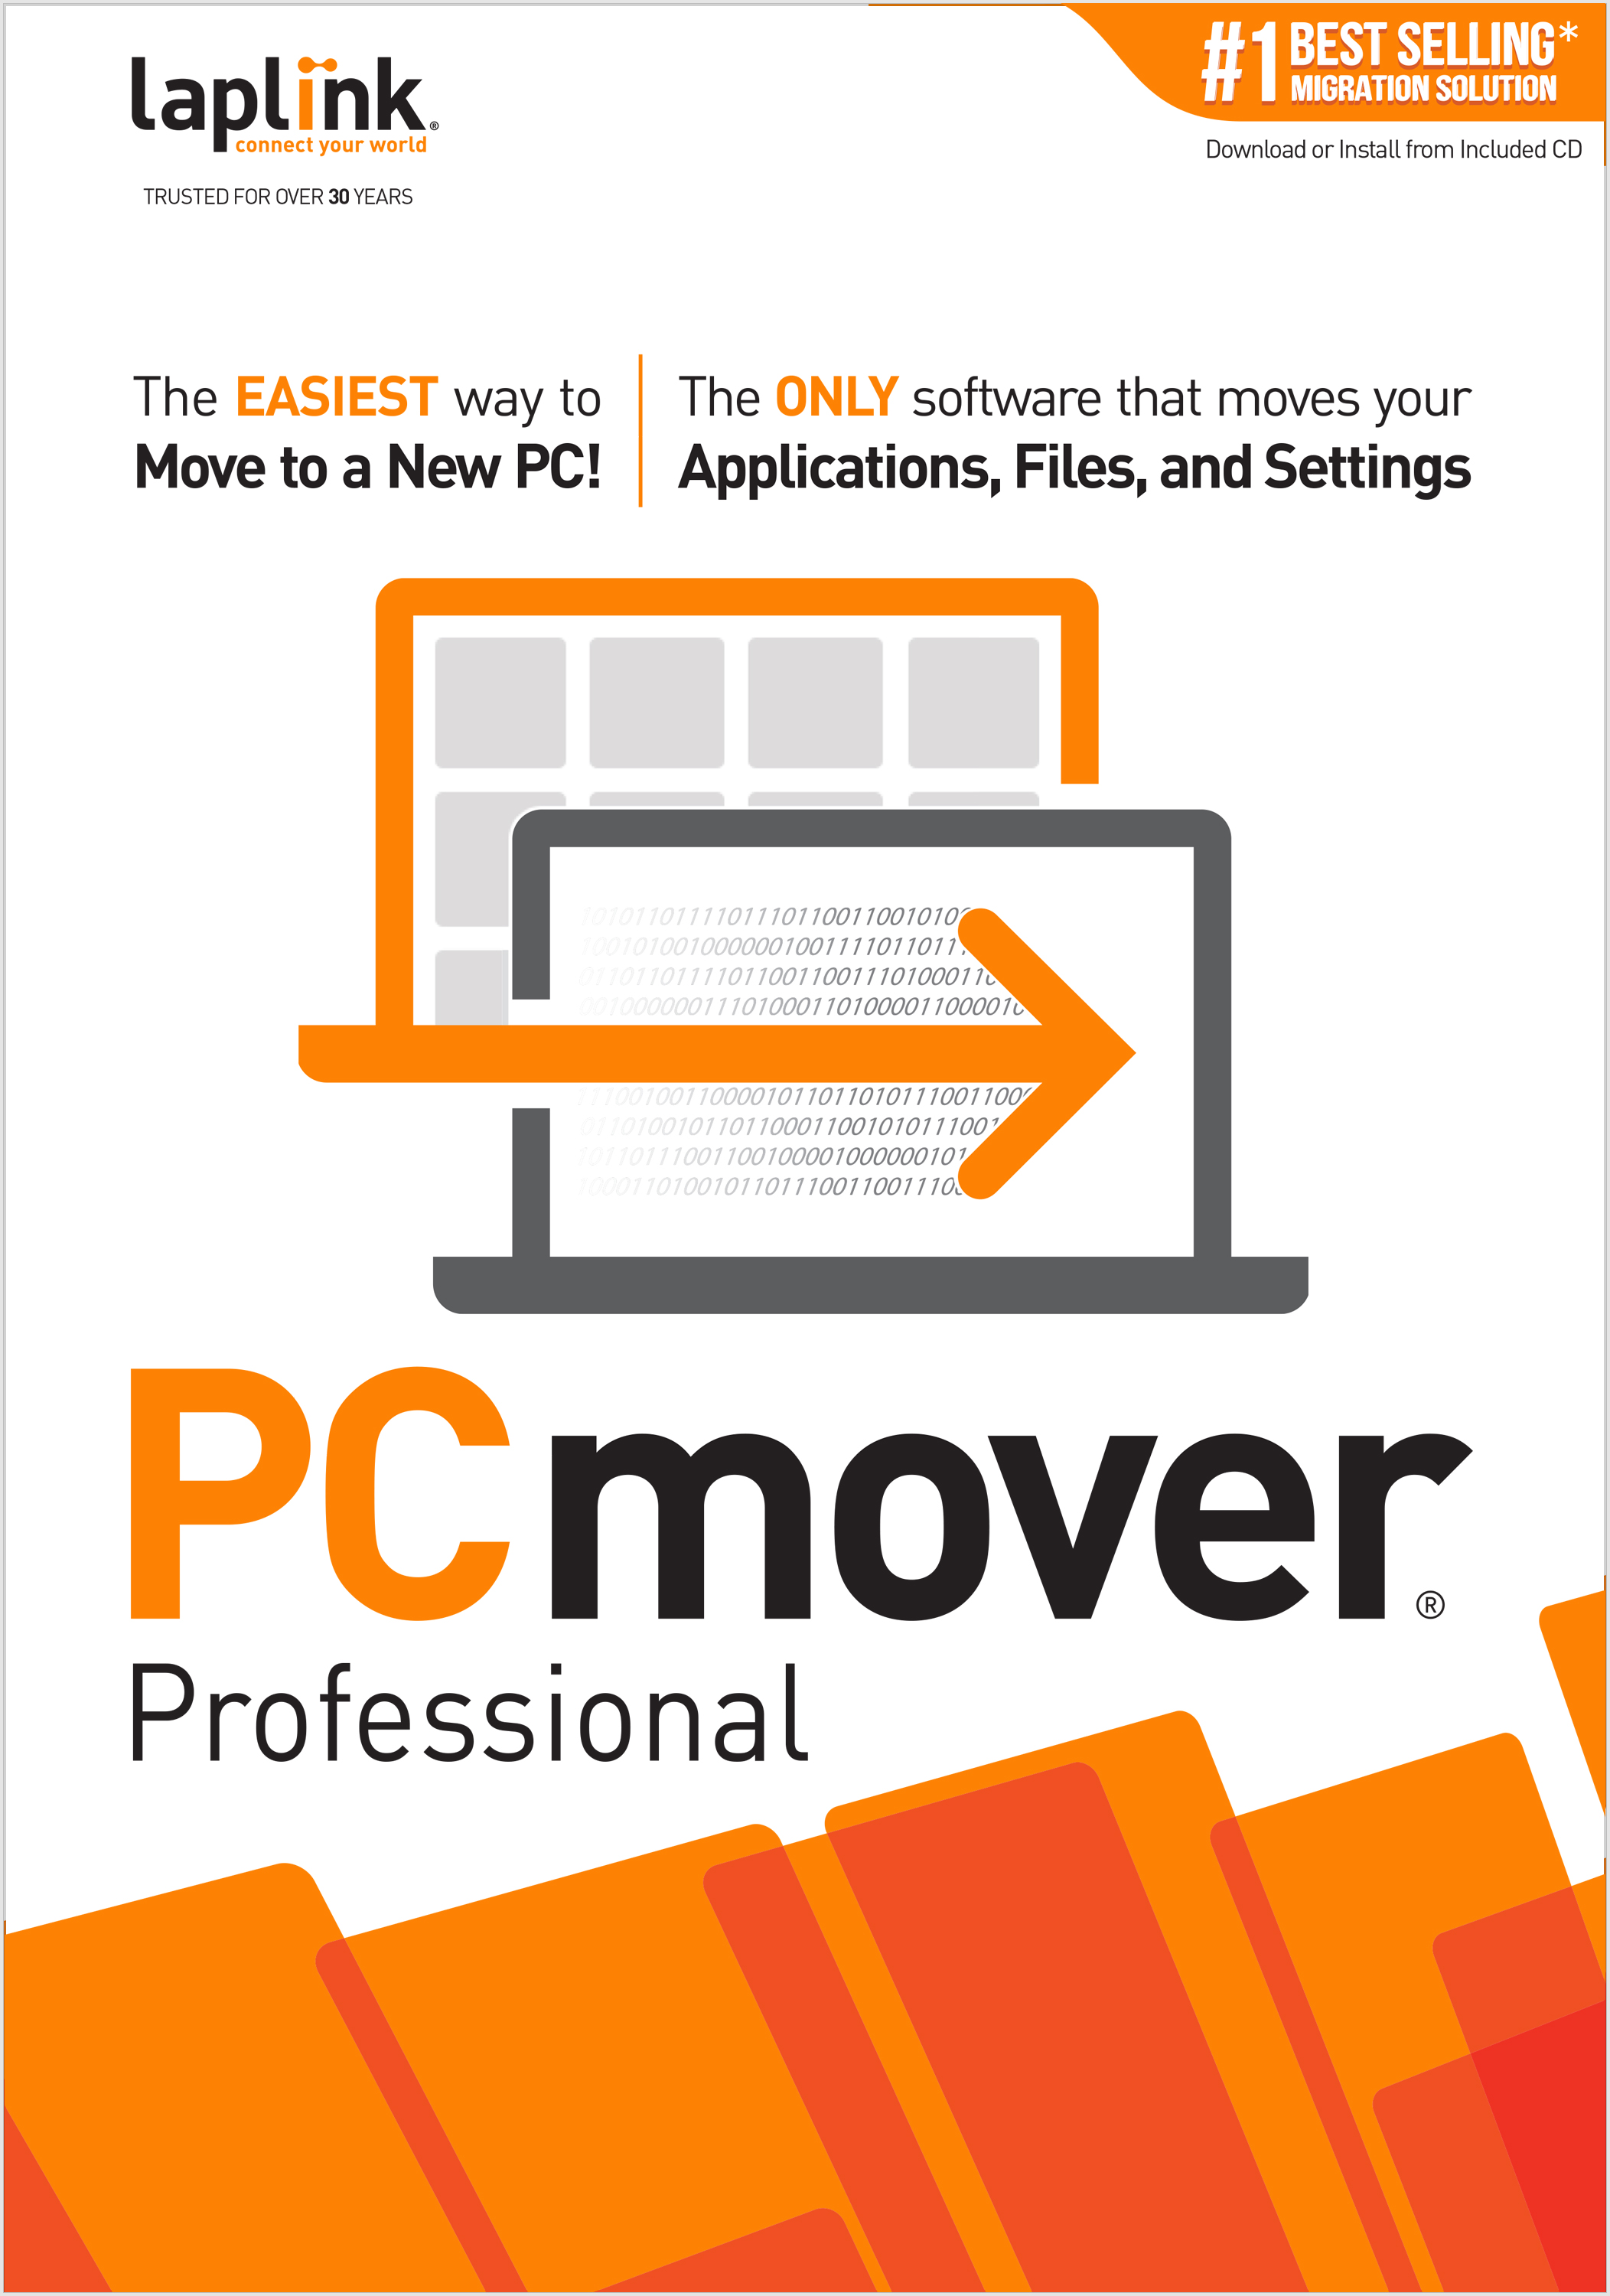 Software : PCmover Professional 11  (1 Use) - The easiest way to move to a new PC! [Download]